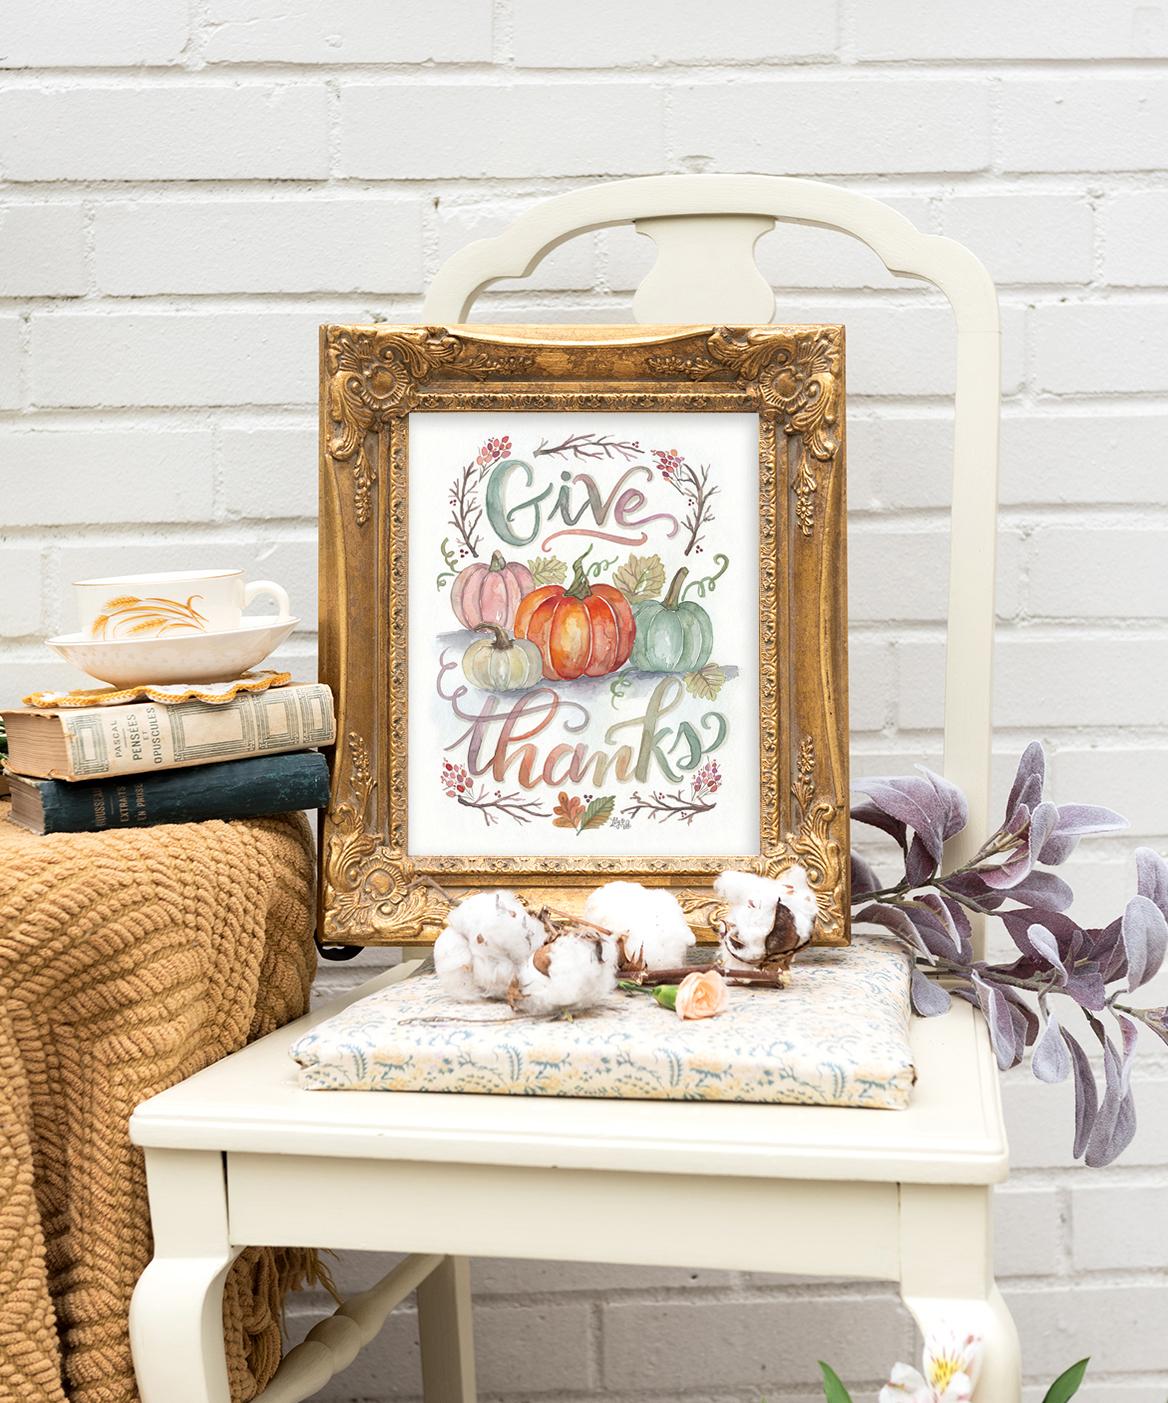 Give Thanks Watercolor Pumpkin Art for your Fall Decor | Cozy fall decor